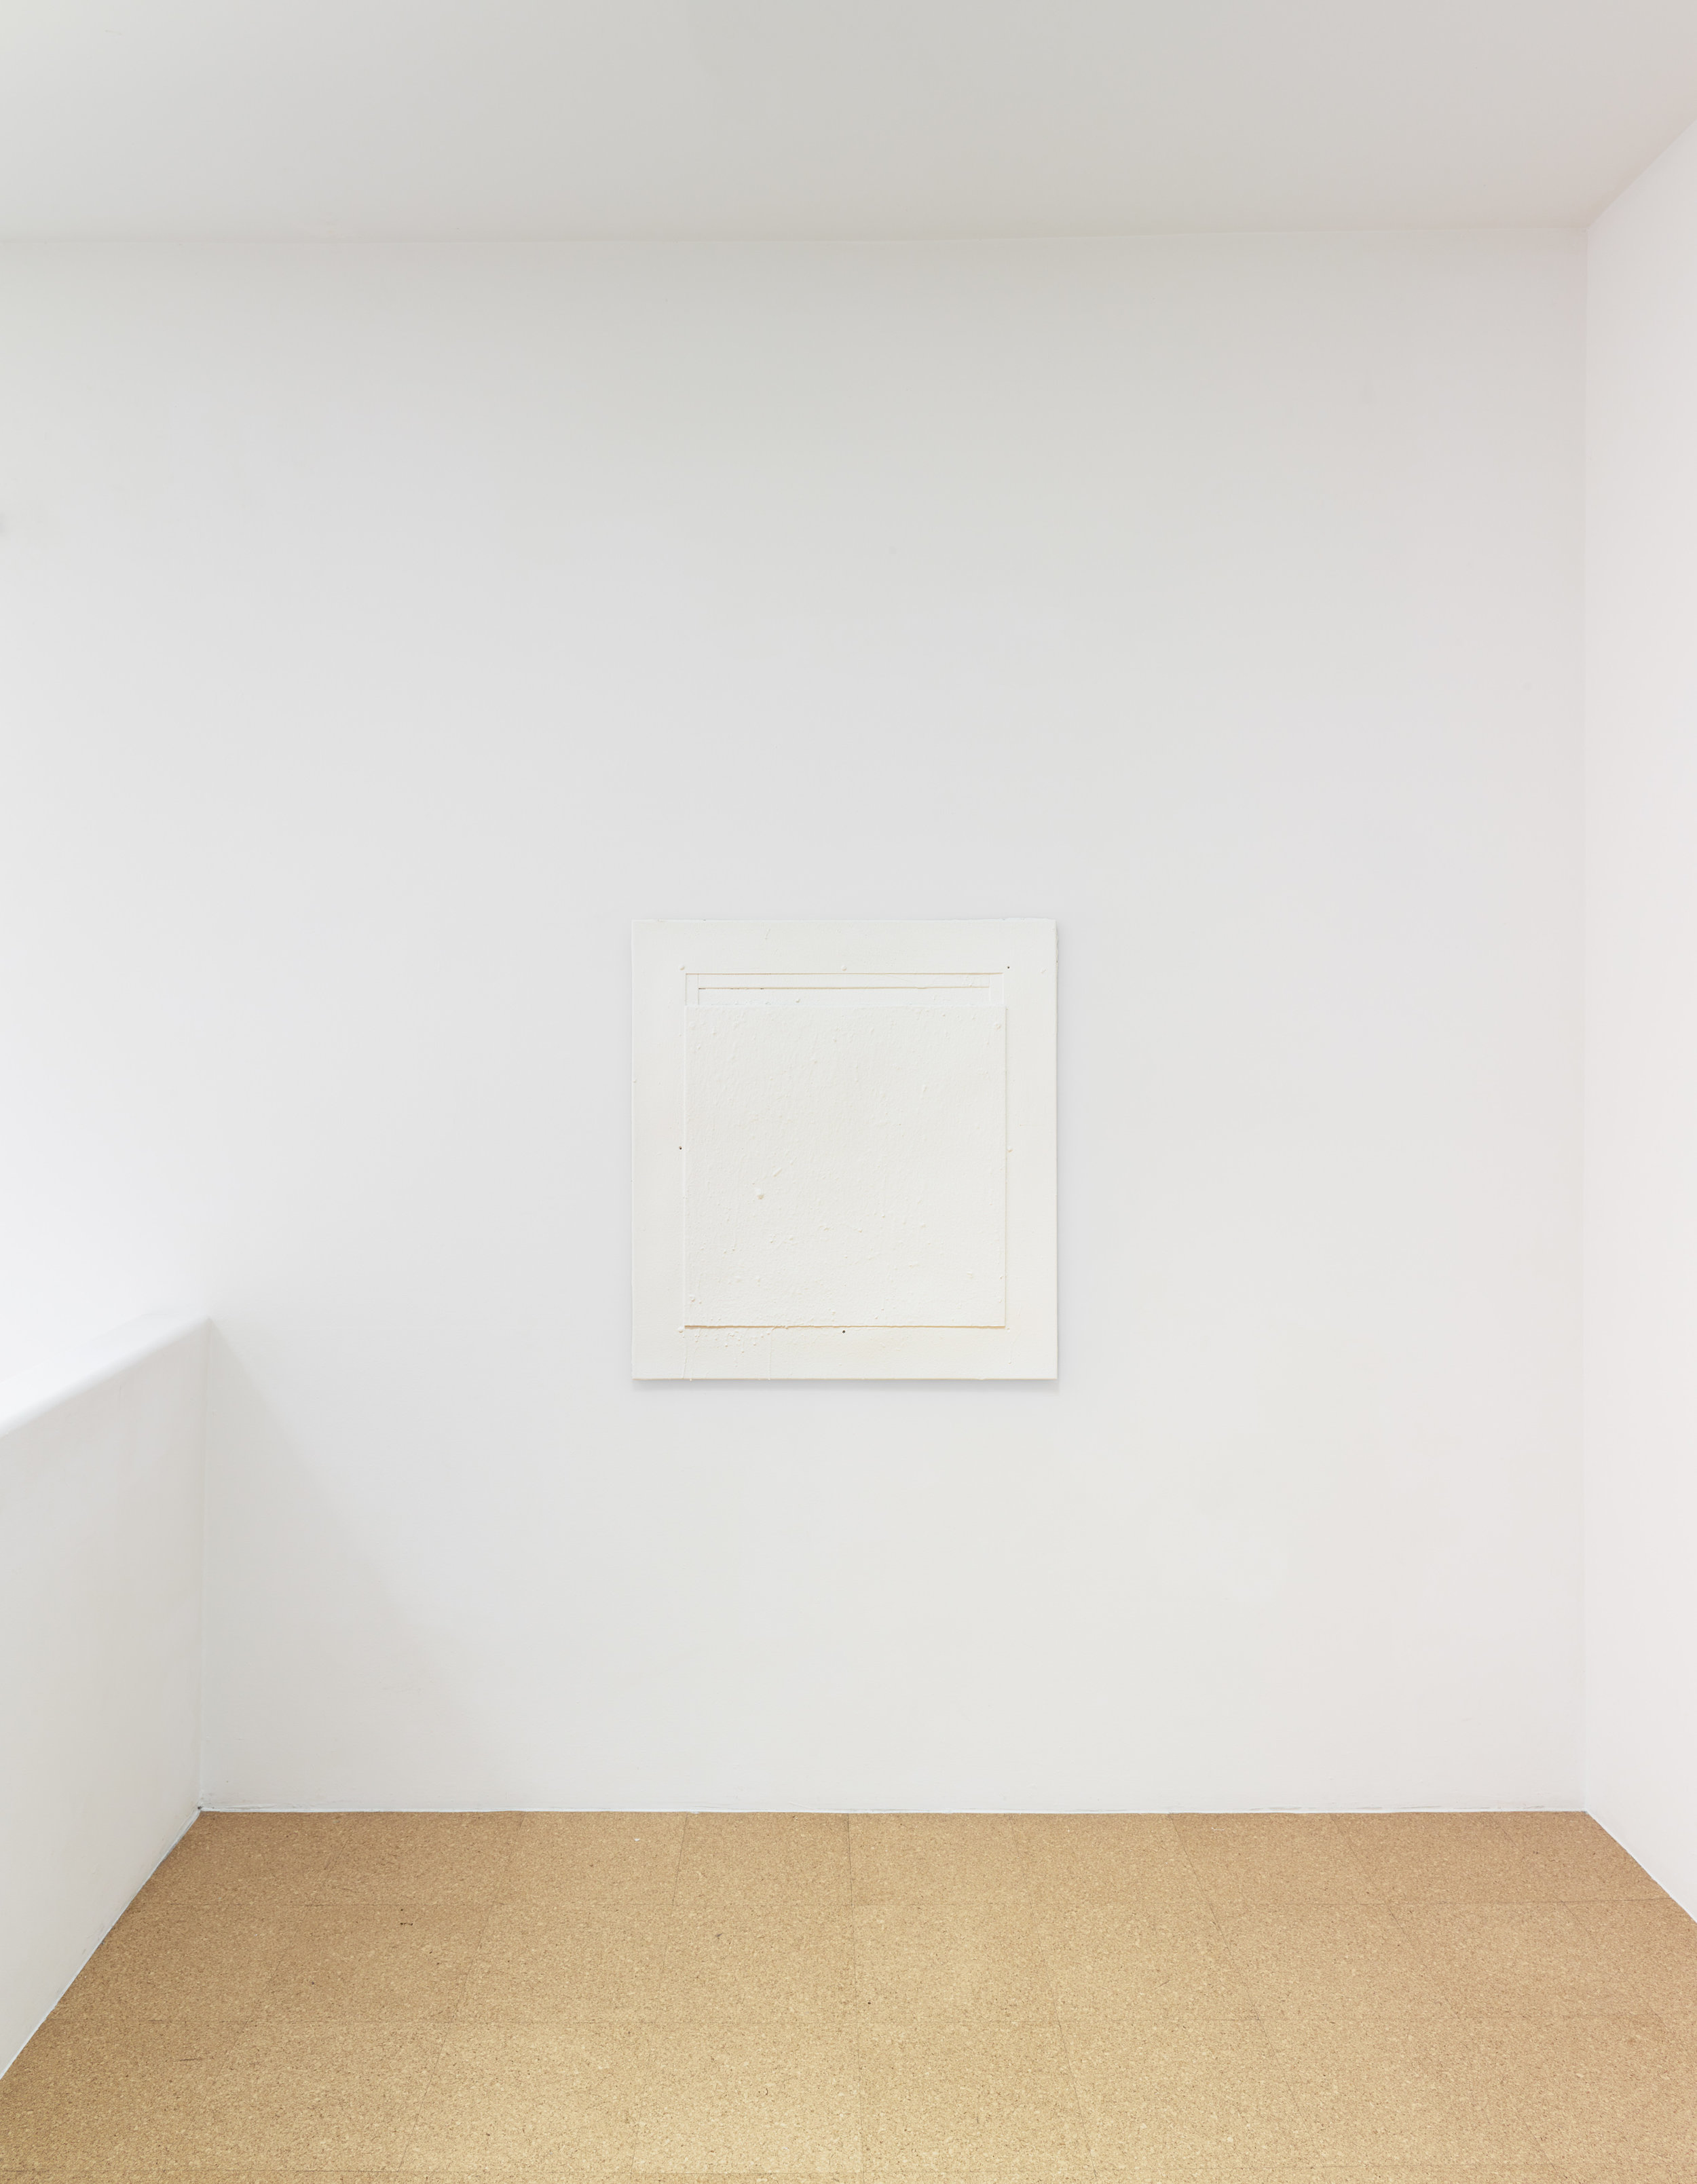 Fiona Connor, Direct Address, 2018. Installation view 1301PE.